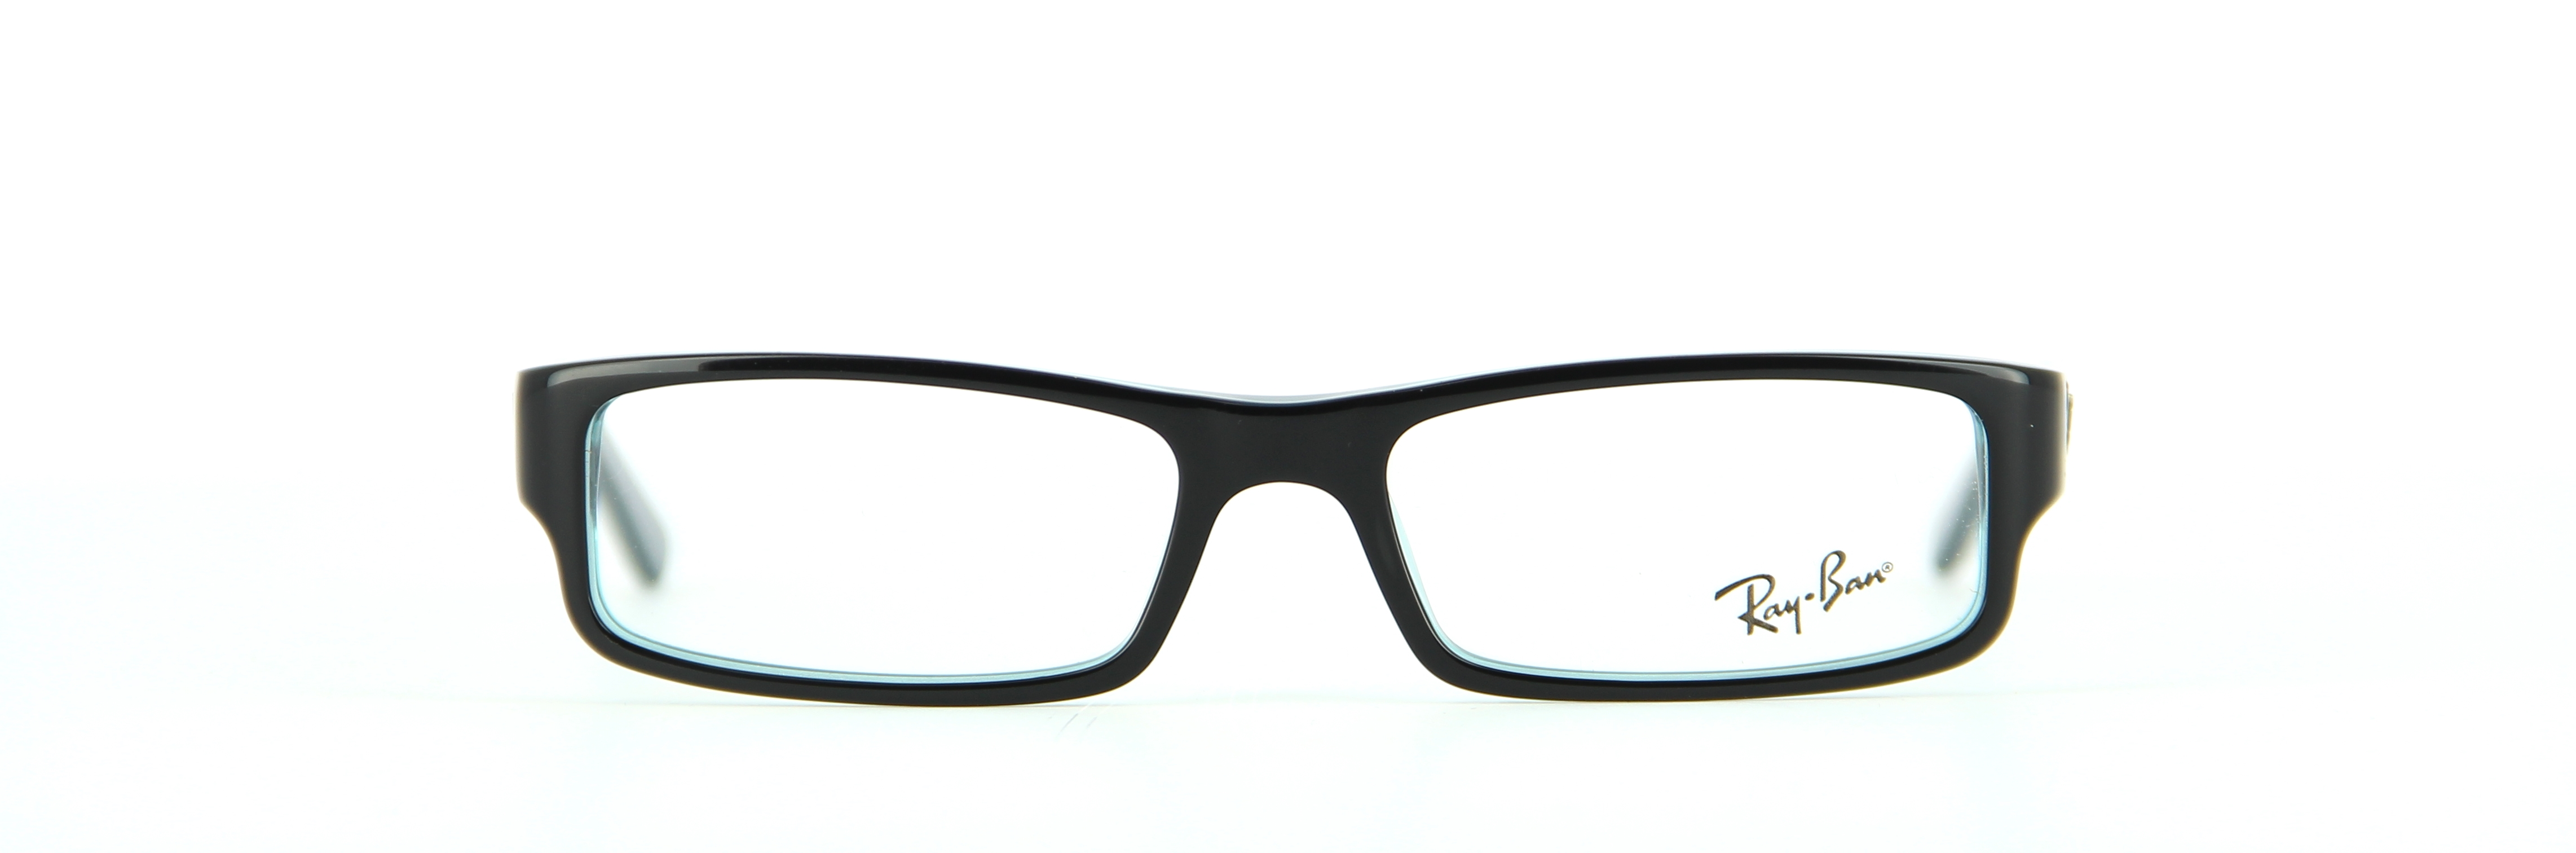 c9883e9be5 Ray-ban Rx5246 Youngster 5092